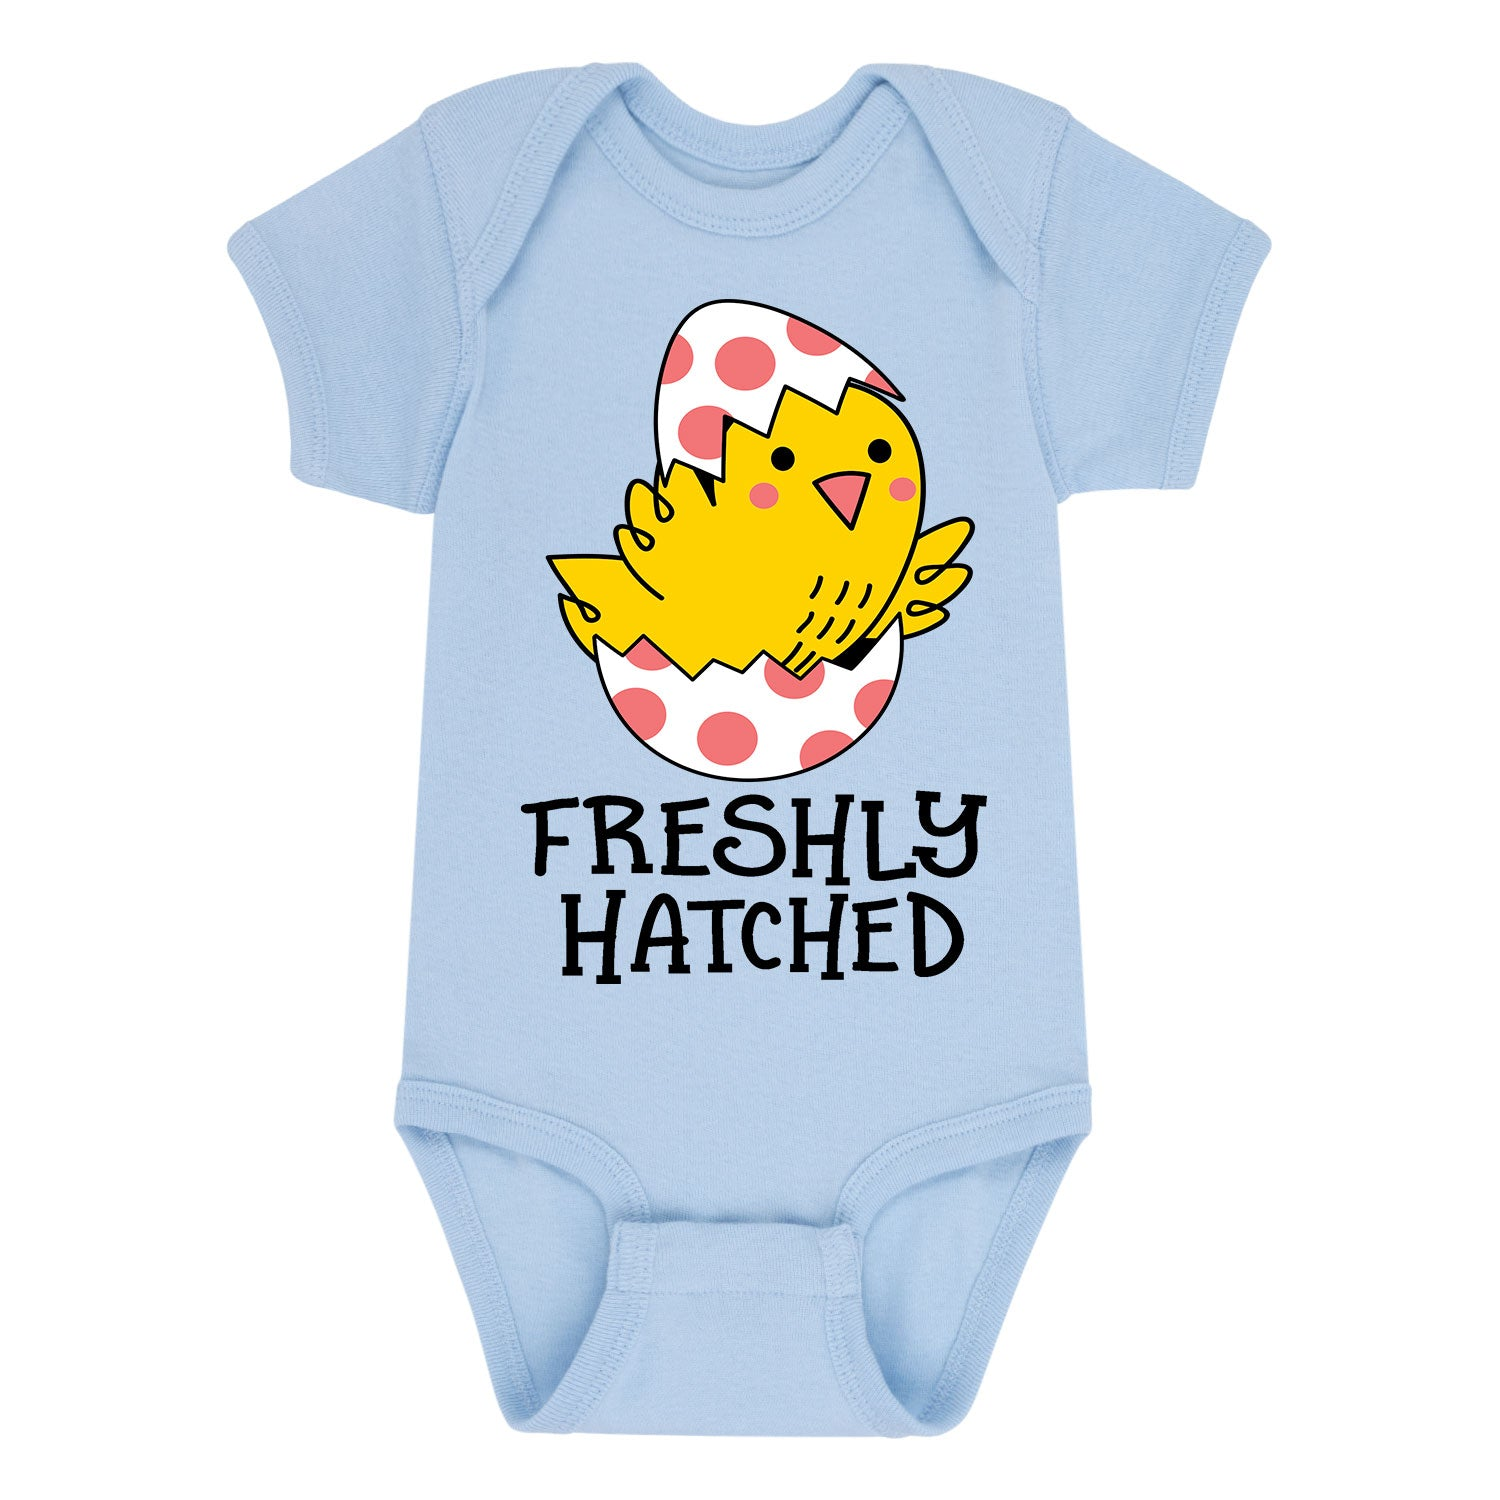 Freshly Hatched - Infant One Piece